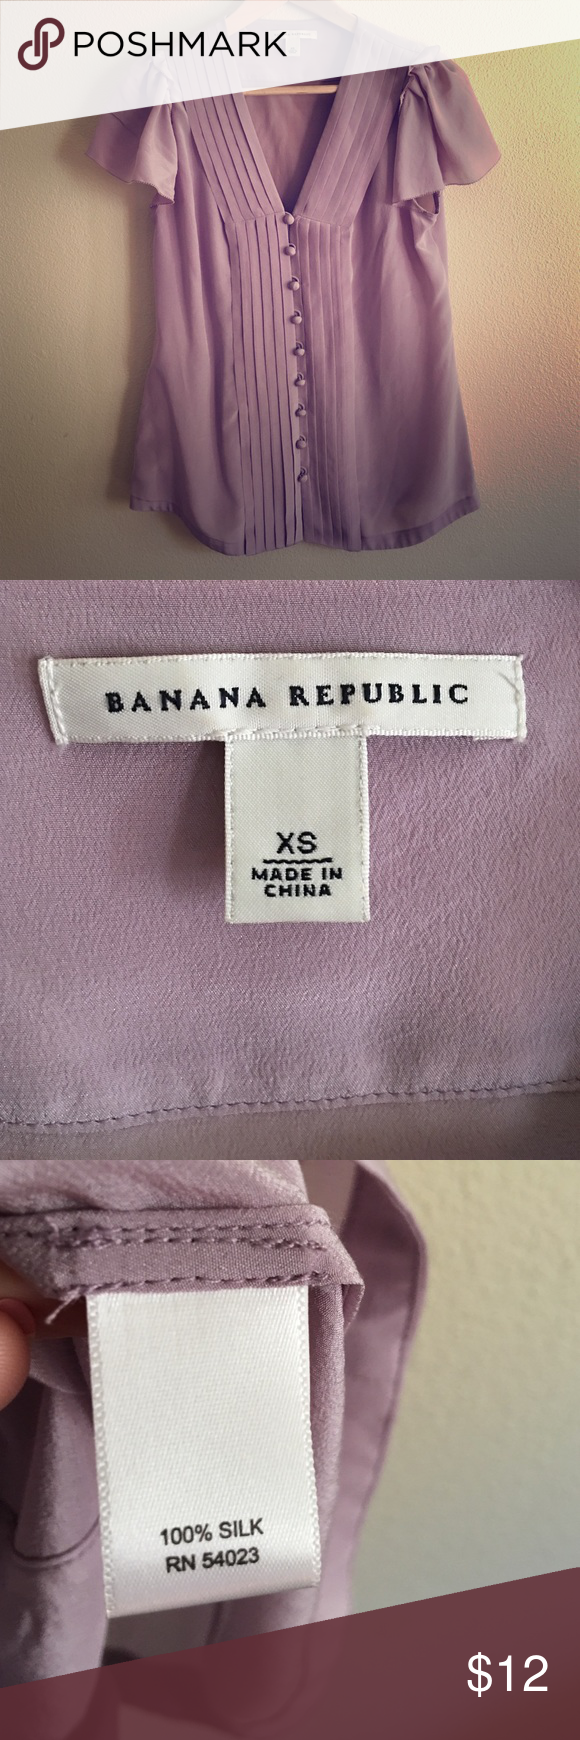 Pastel purple Banana Republic silk top Never worn. 100% silk top with lovely fabric covered buttons. Flowey and great for summer. The last photo does not show the true color, the others look pretty true to color. Banana Republic Tops Blouses